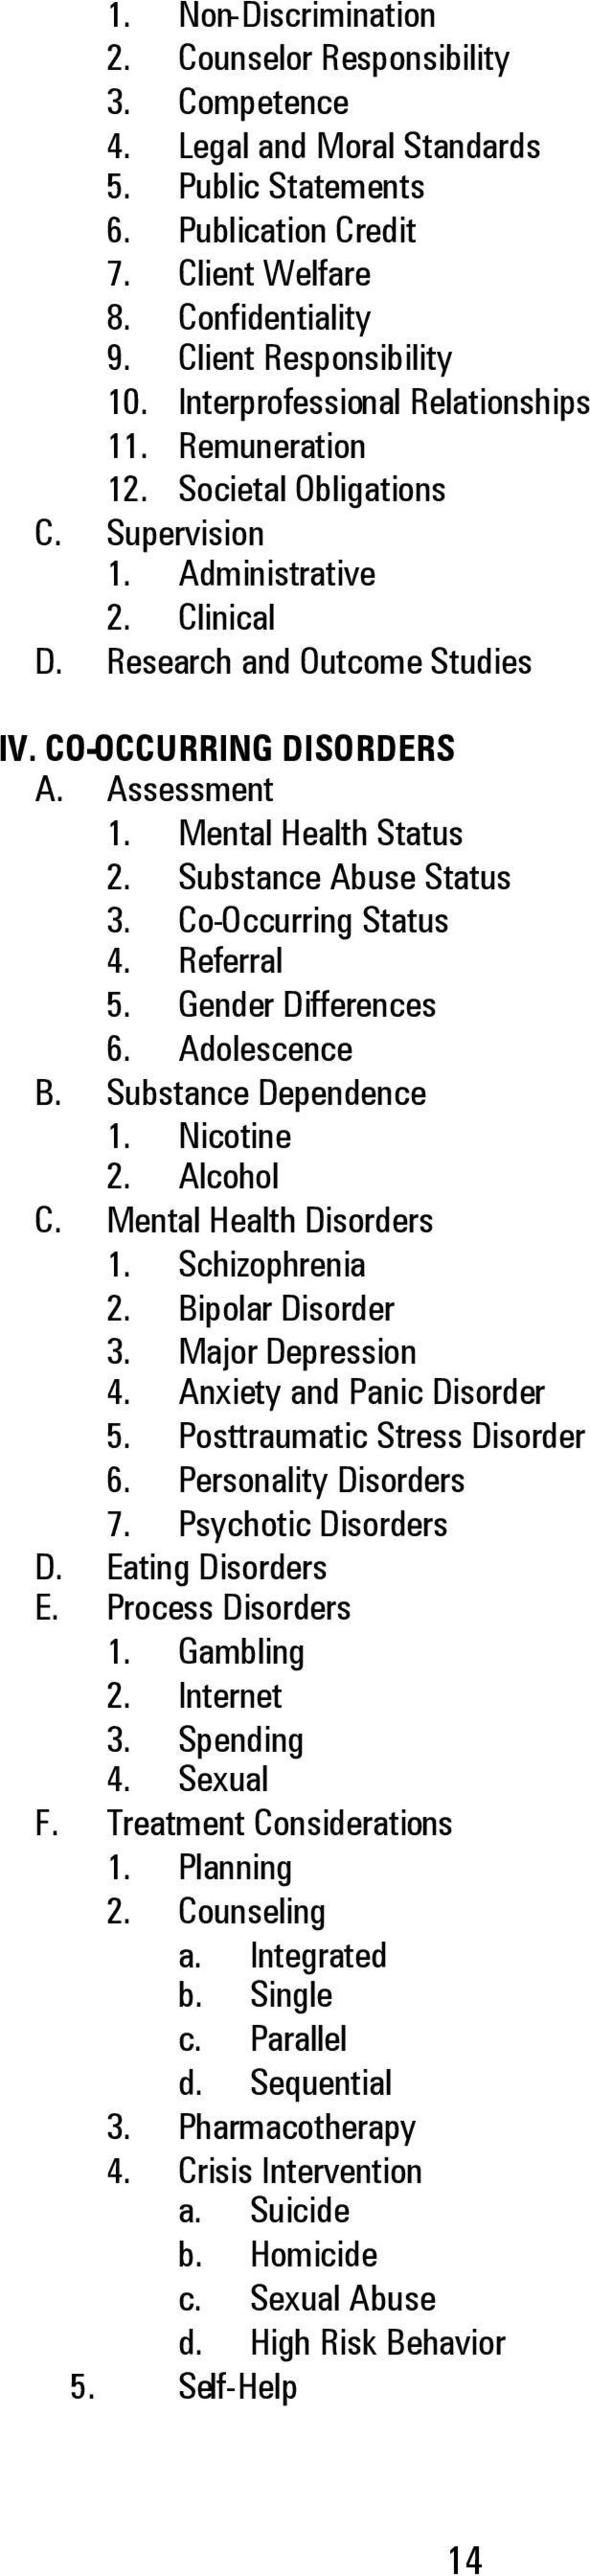 CO-OCCURRING DISORDERS A. Assessment 1. Mental Health Status 2. Substance Abuse Status 3. Co-Occurring Status 4. Referral 5. Gender Differences 6. Adolescence B. Substance Dependence 1. Nicotine 2.